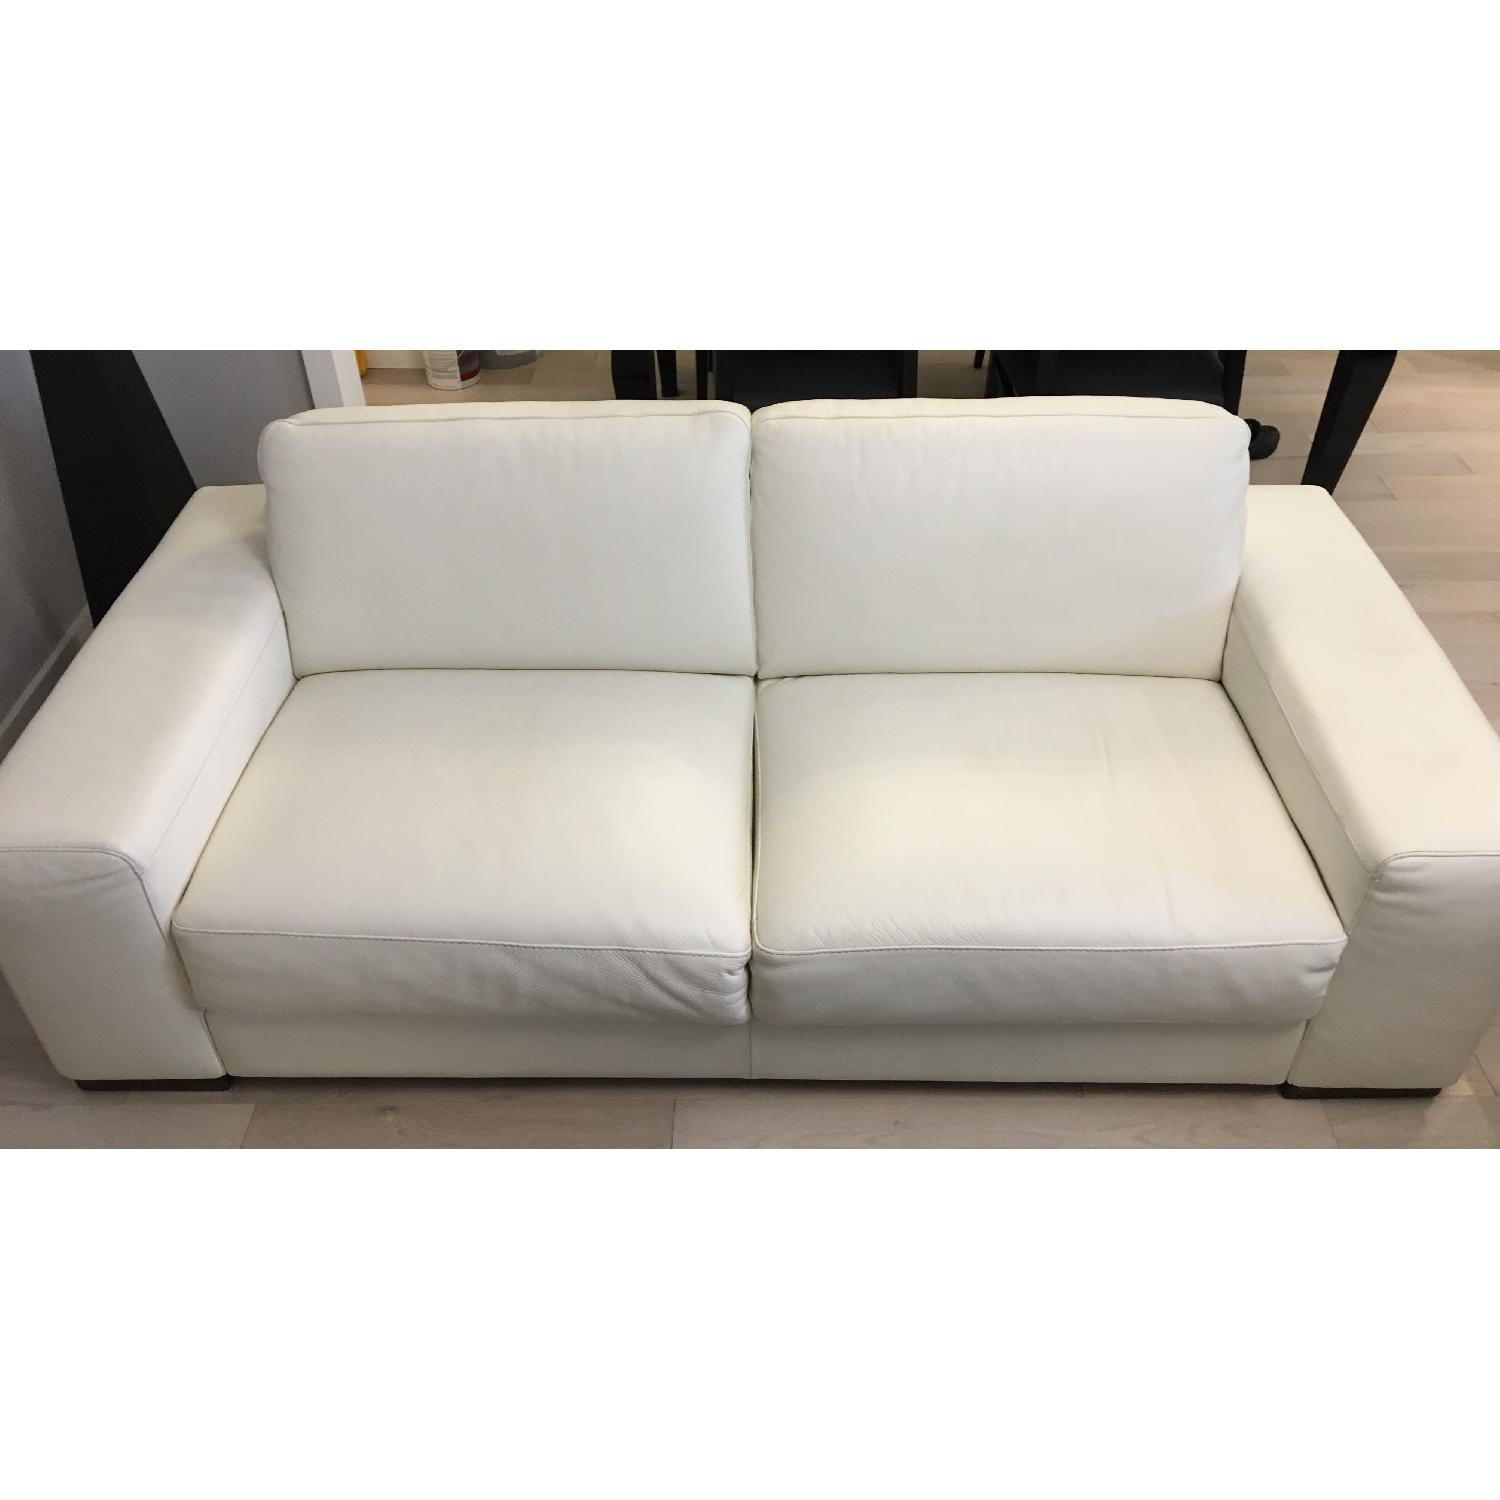 Natuzzi Clark White Leather Sofa - image-5